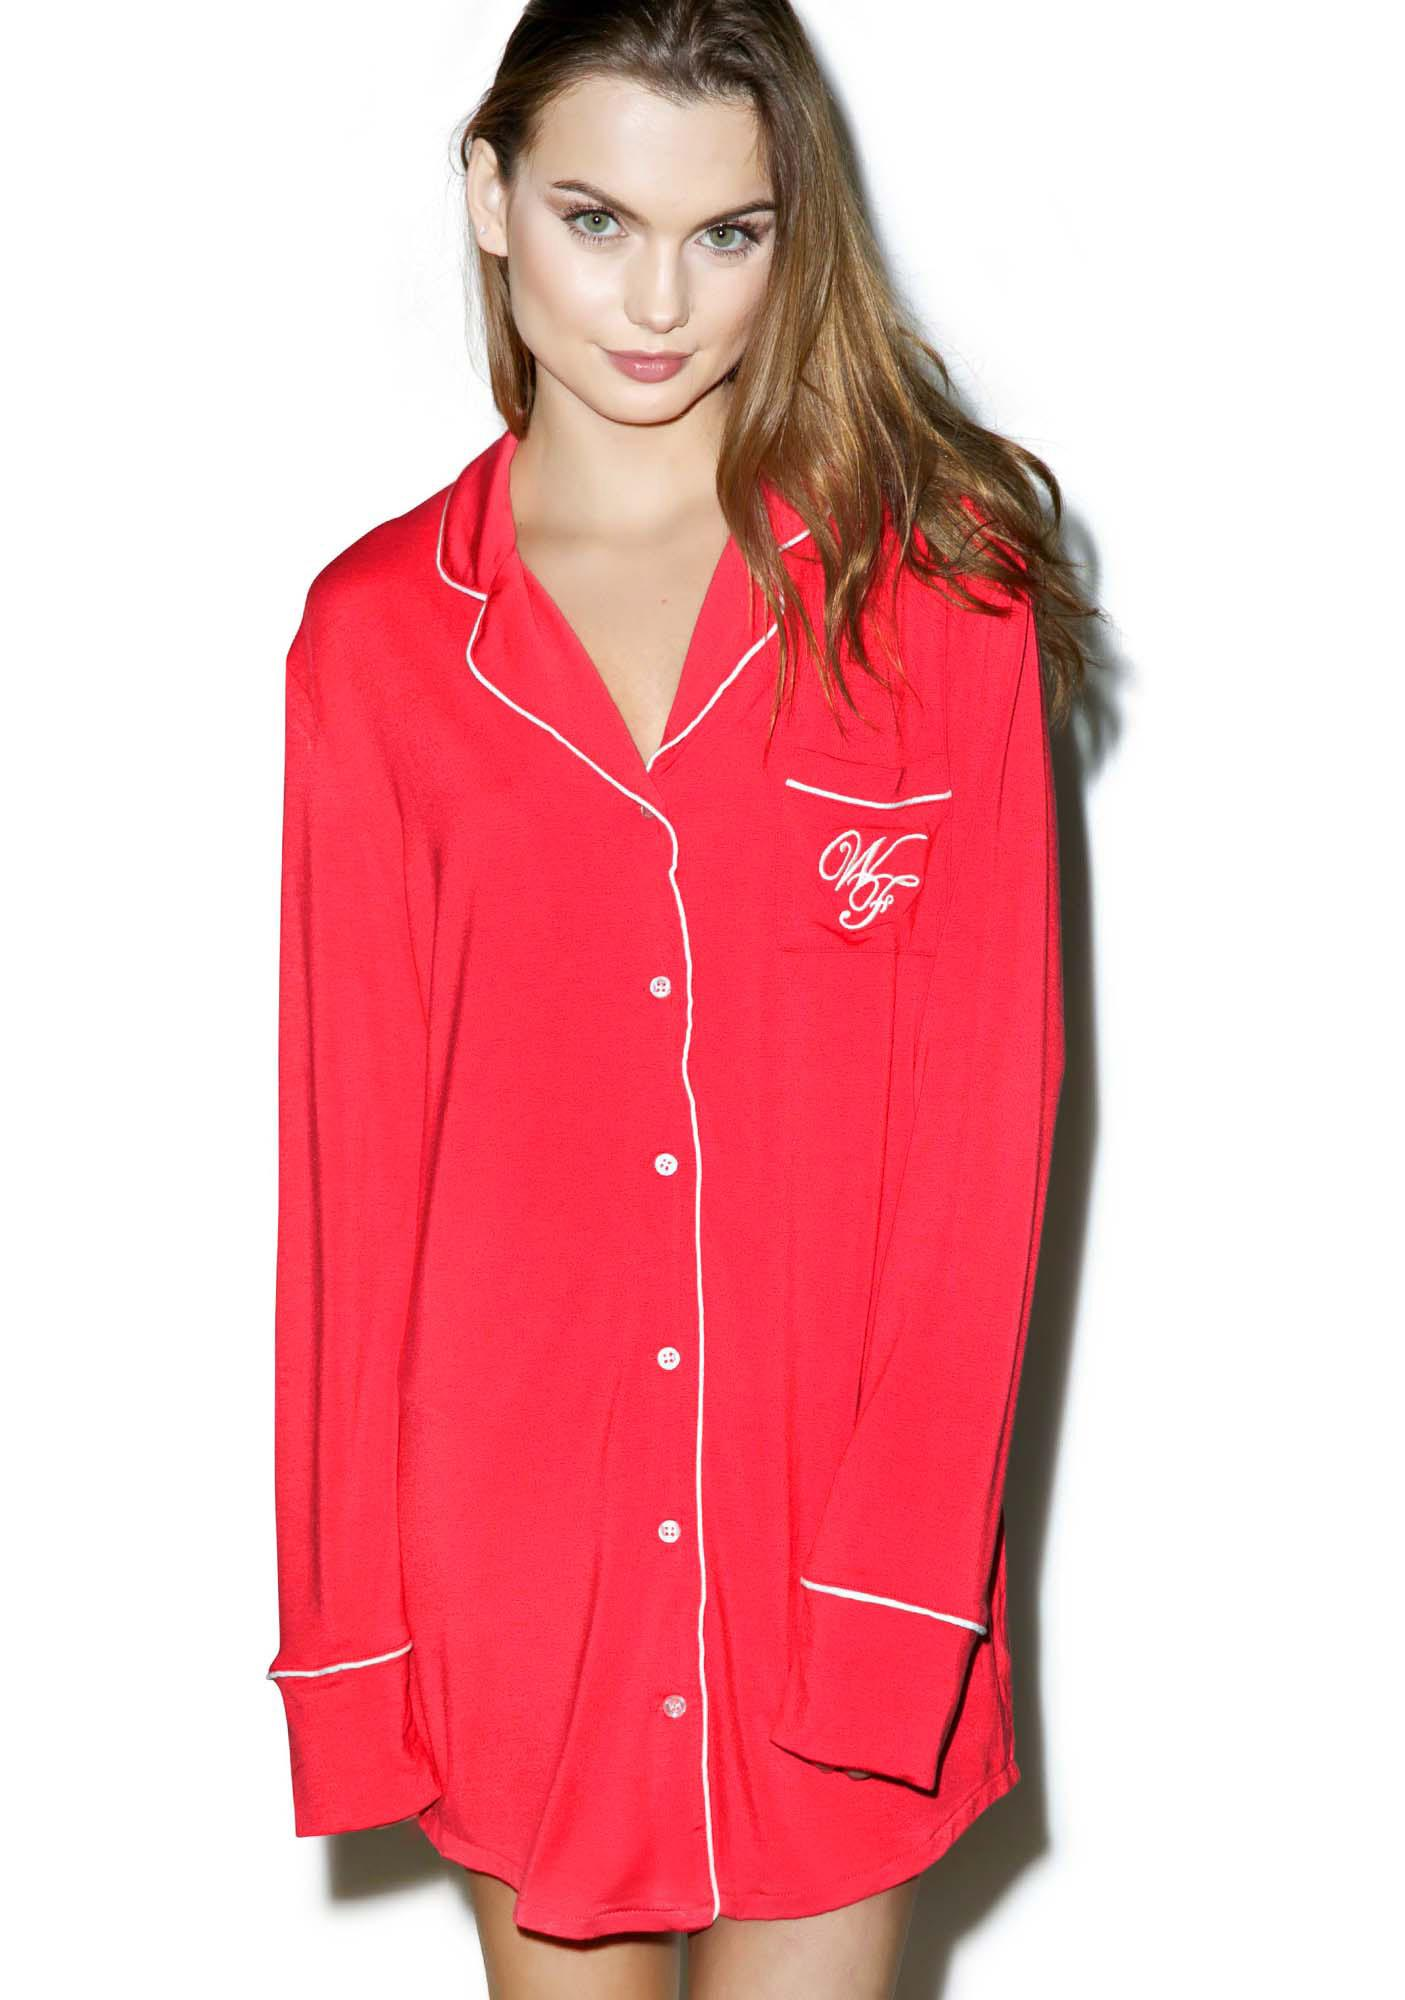 Wildfox Couture Let's Spend The Night Sweet Dreams Sleepshirt